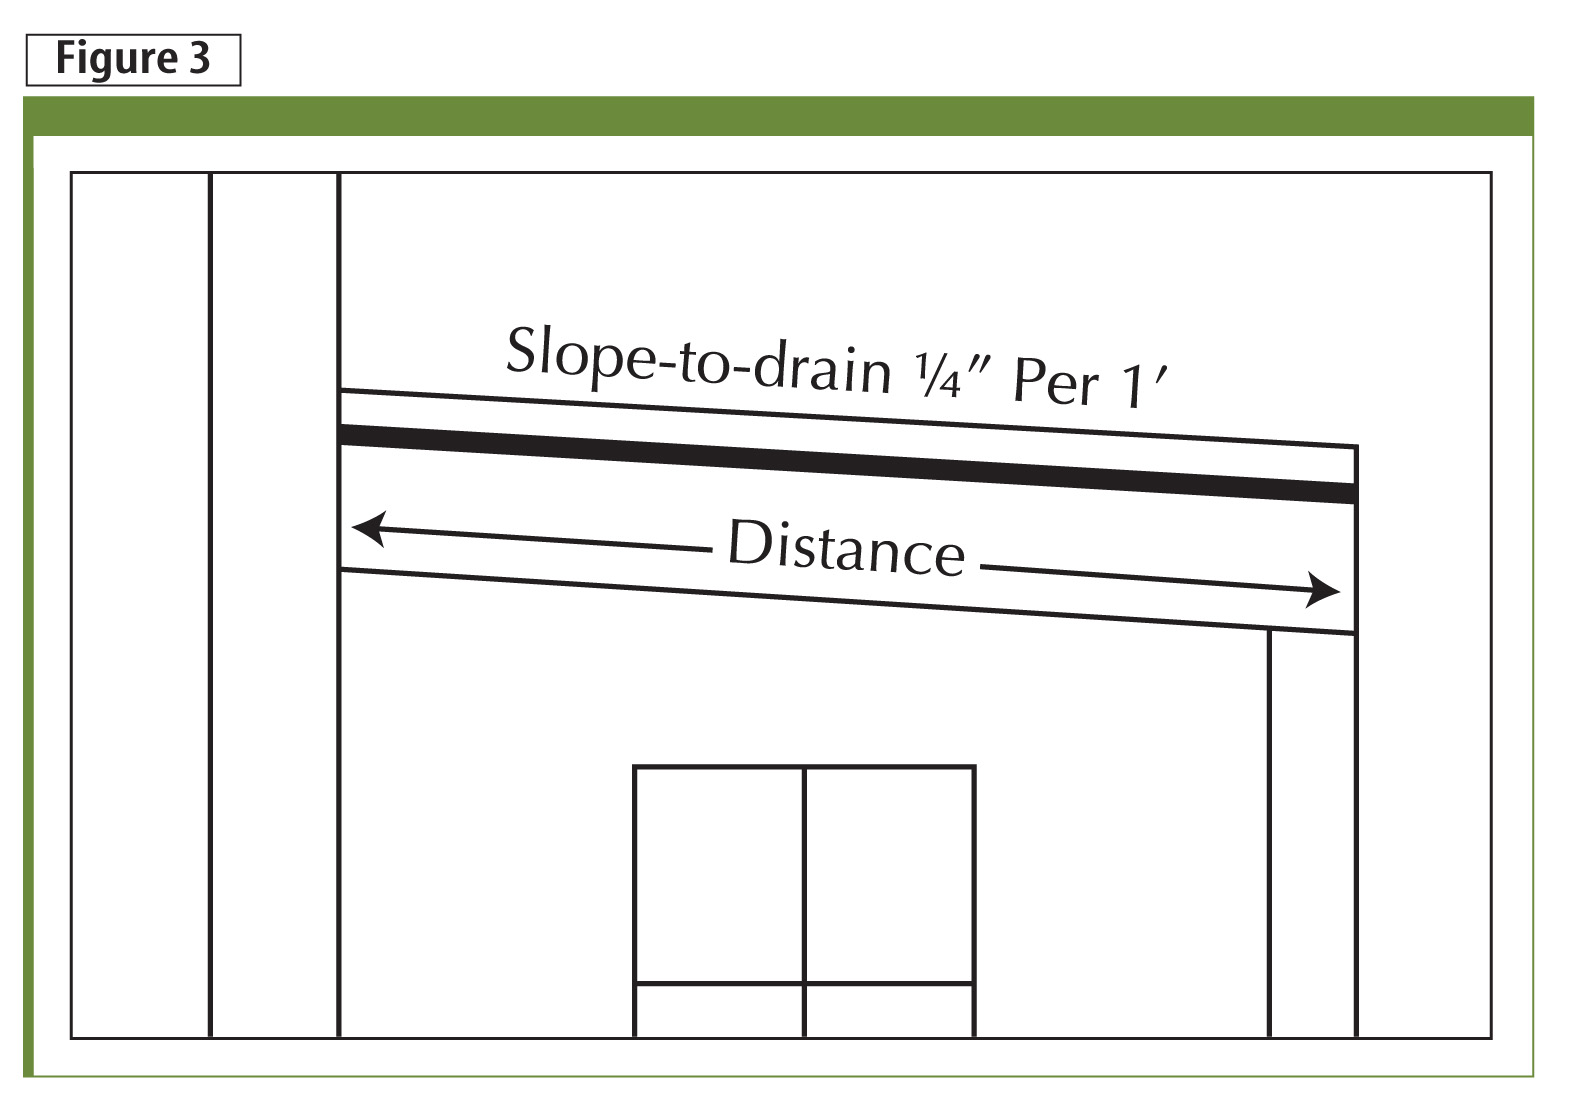 The slope-to-drain for a structural deck's top surface.